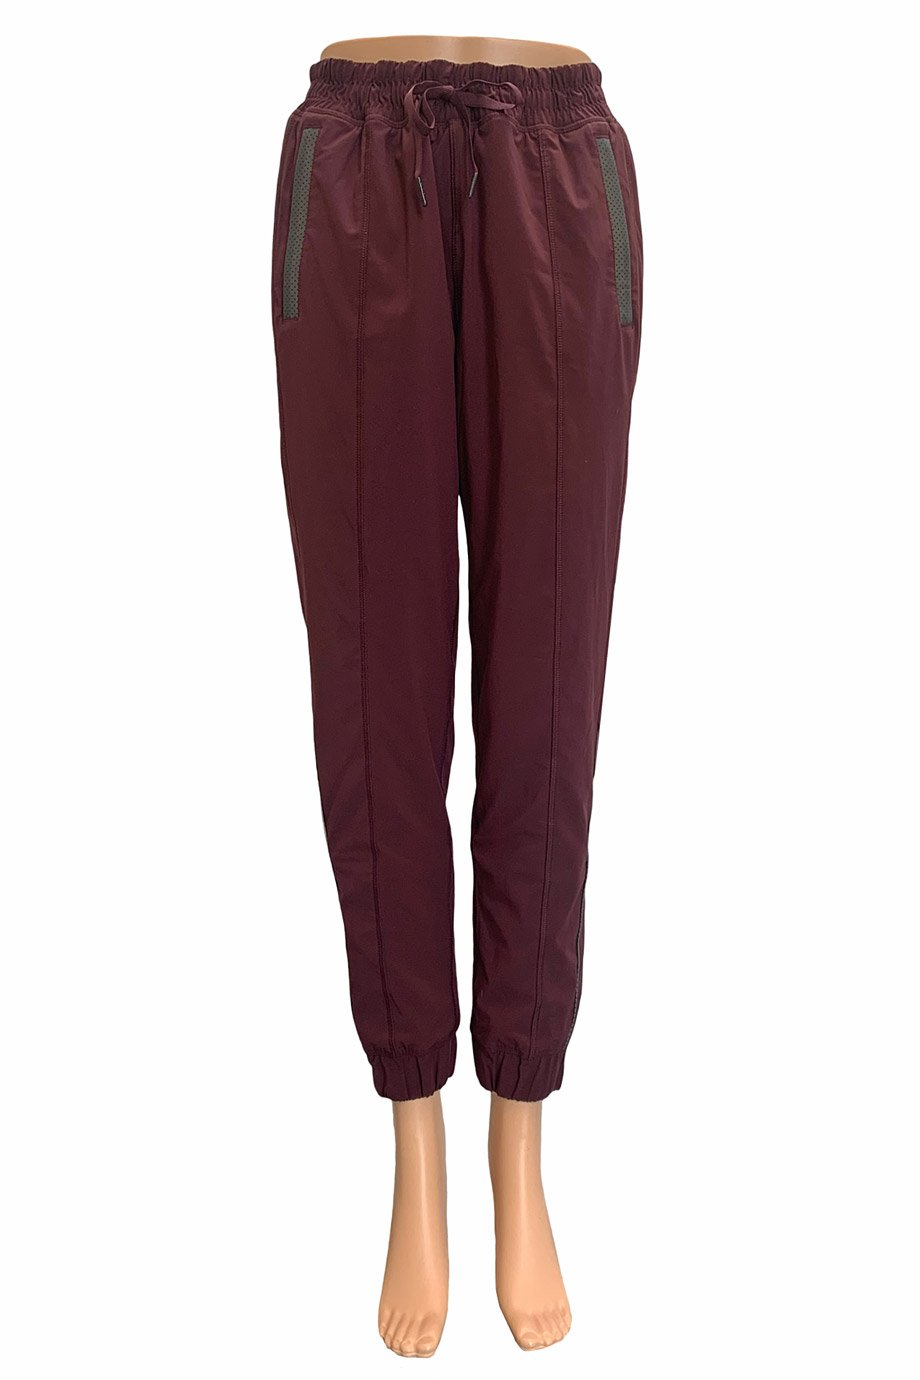 Lululemon Bordeaux Track to Reality II Athletic Pants / Sz 6